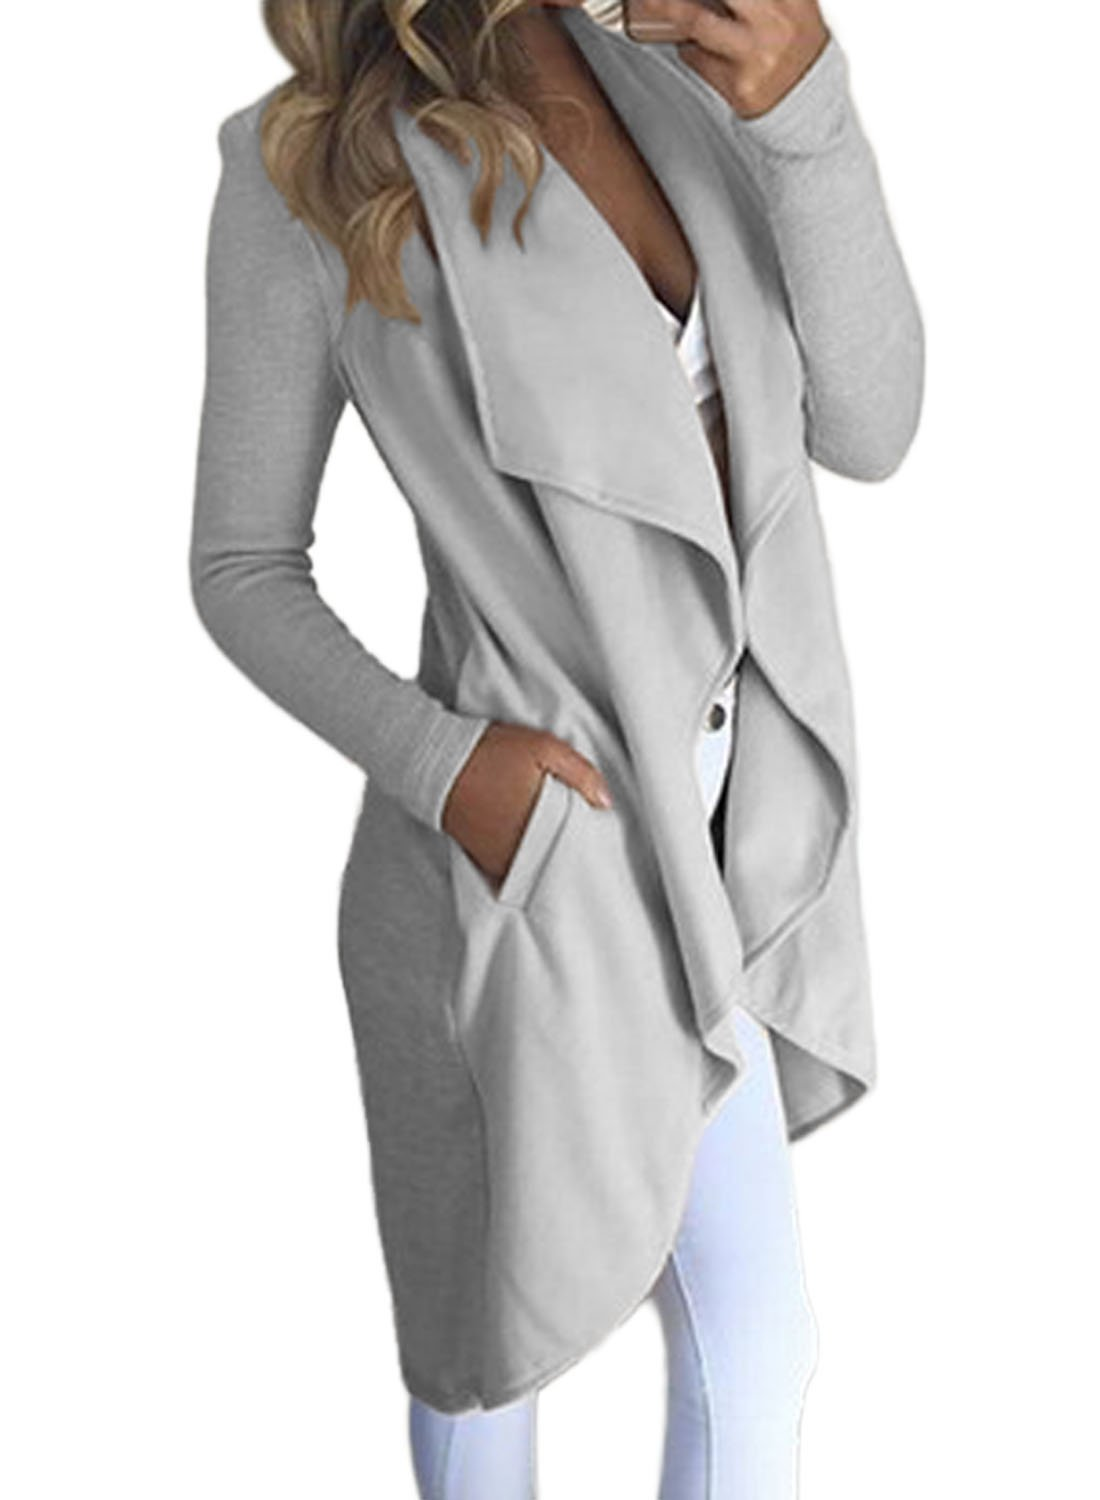 HOTAPEI Women's Cardigan Winter Wide Lapel Pocket Wool Blend Coat Long Trench Coat Outwear Wool Coat Cardigans For Women Grey Small